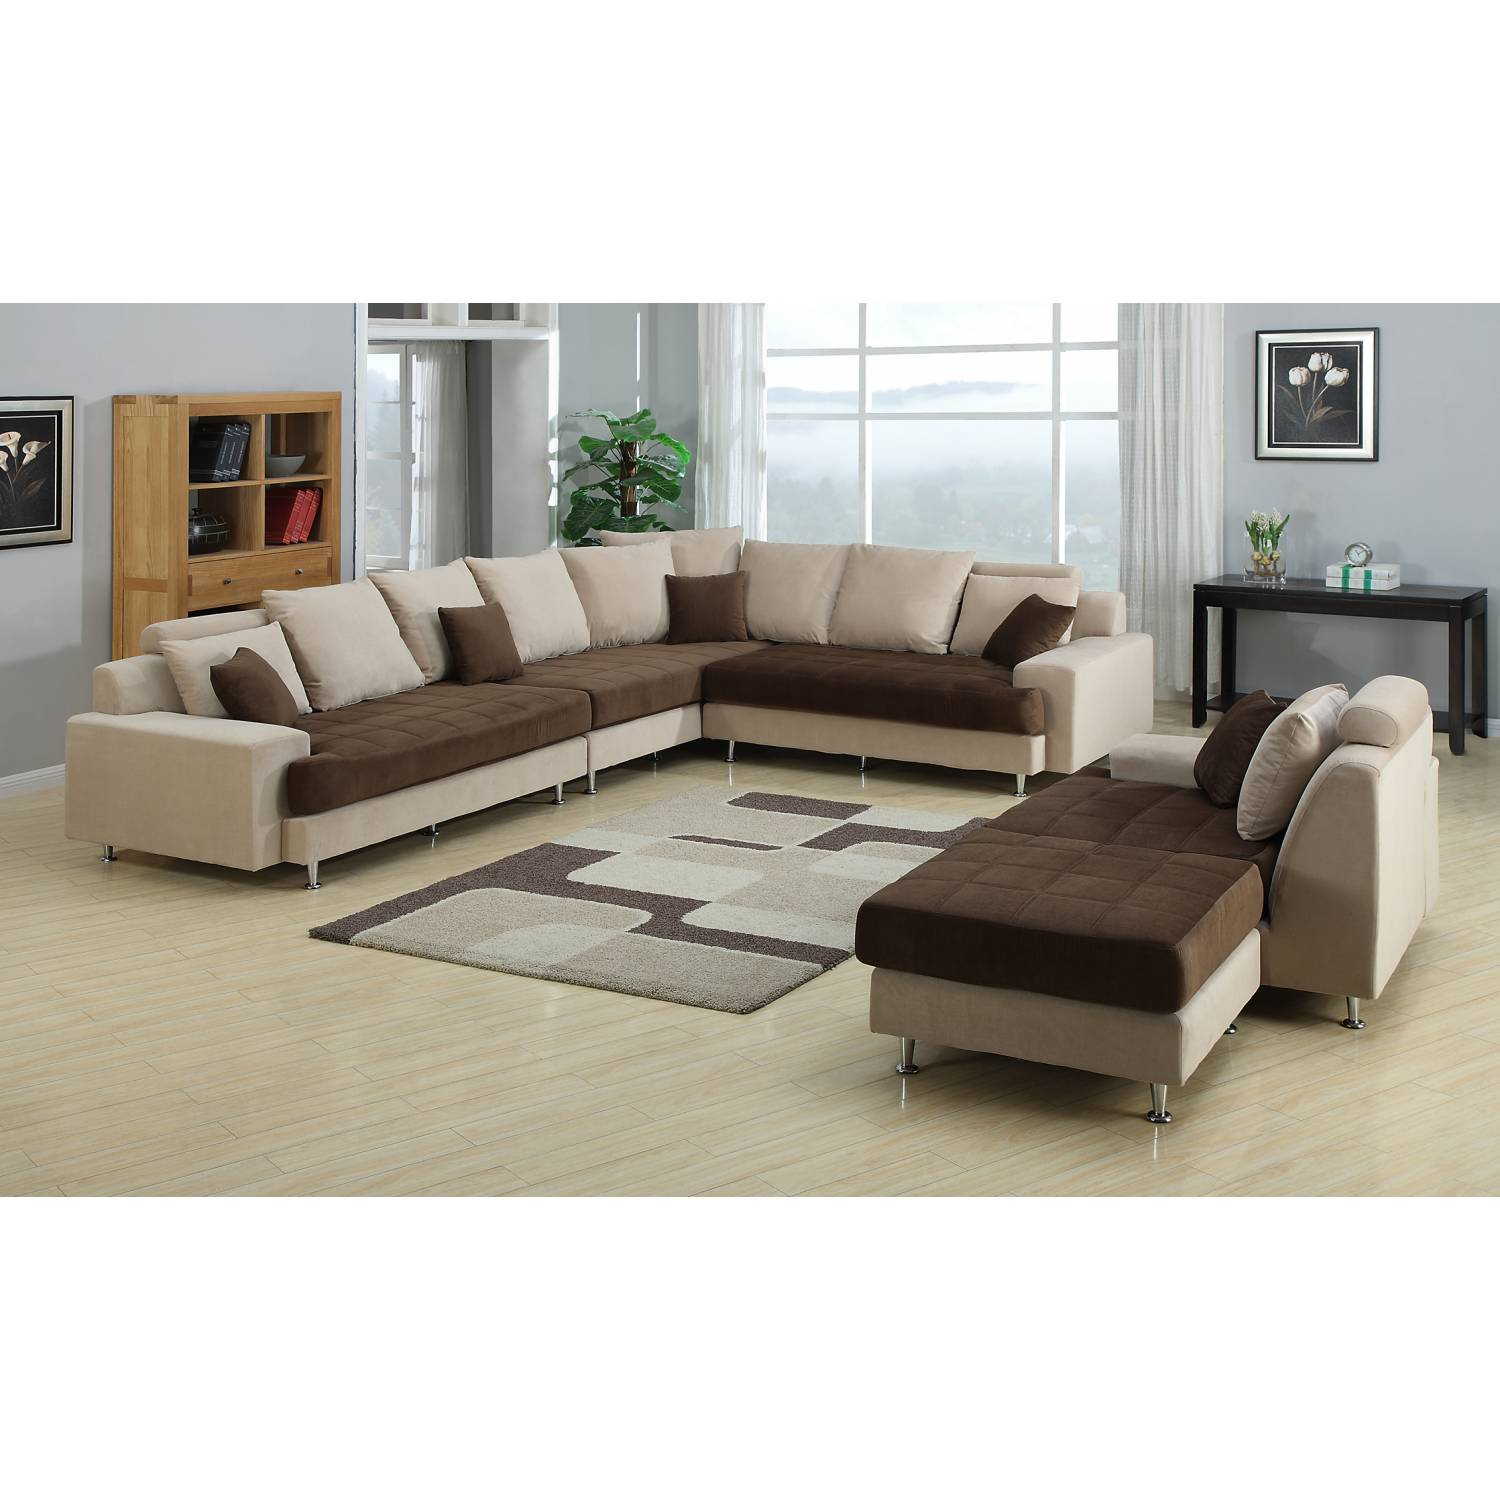 J2020 3 PIECES TWO TONE LIVING ROOM SET SECTIONAL SOFA SET